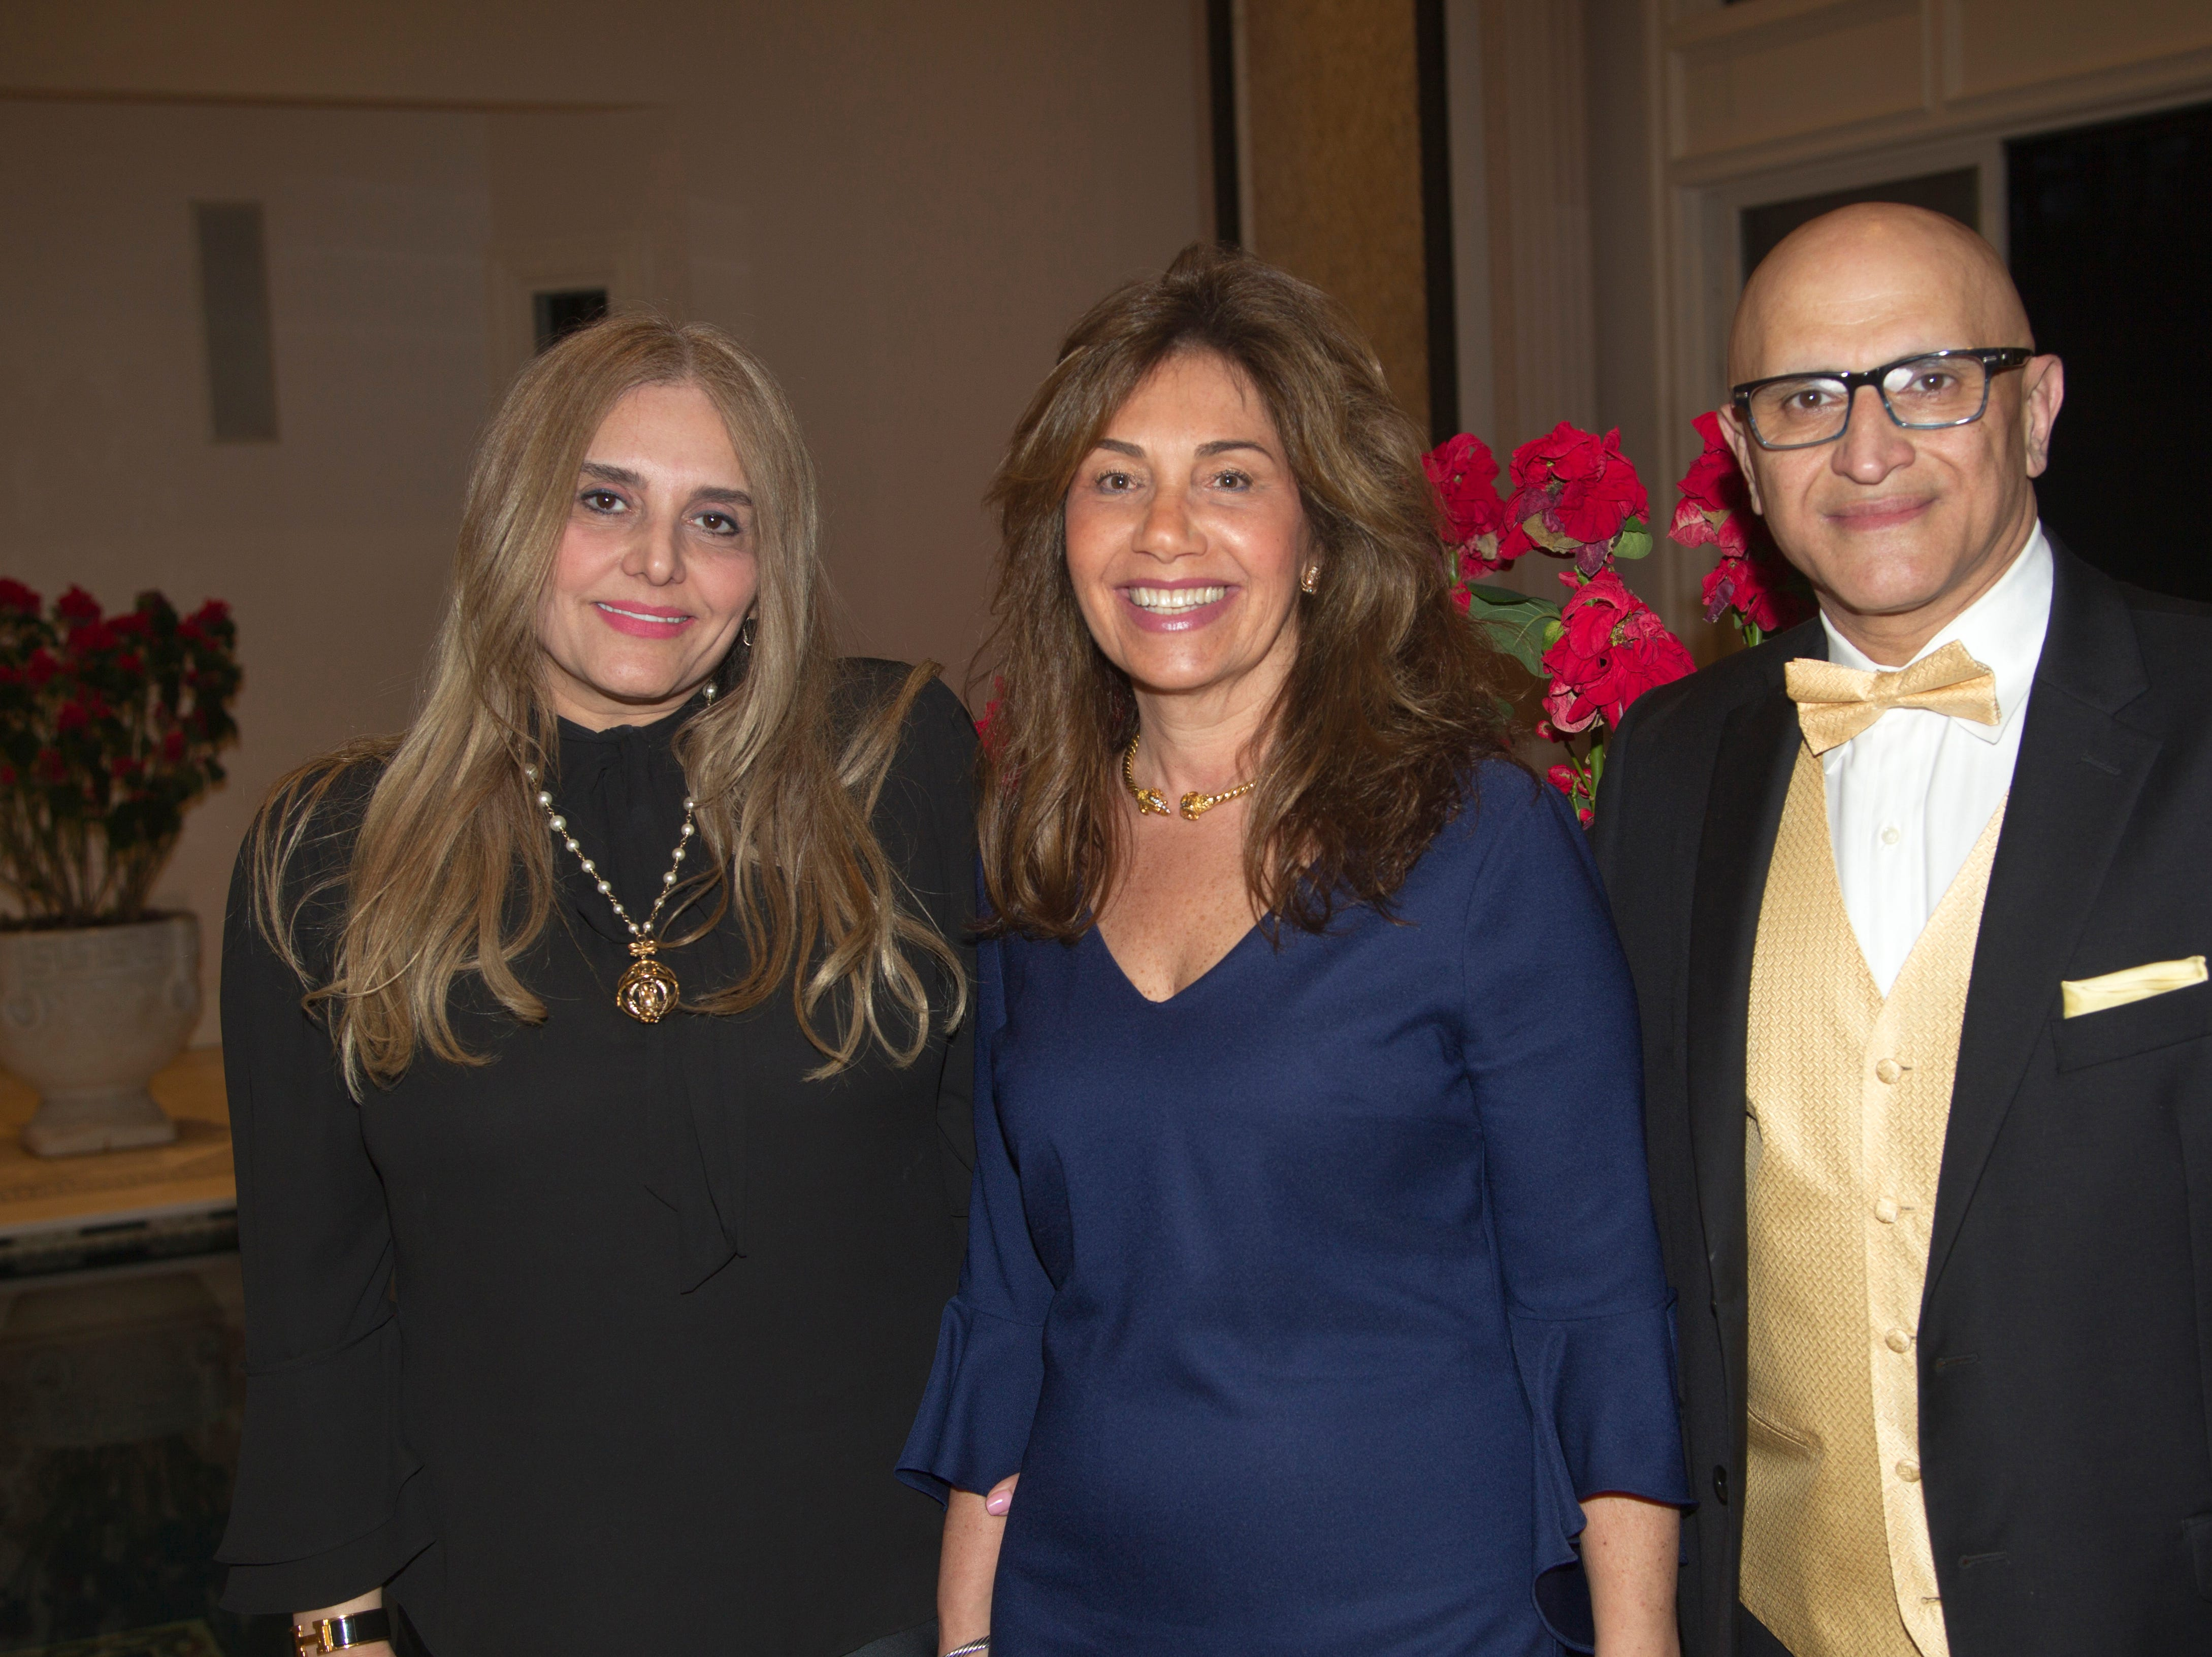 Brooke Rezvani, Alissa Blate, Fred Rezvani. Saddle River Arts Council presents An Evening of Giving Back featureing Eric Genuis in Saddle River. 03/30/2019